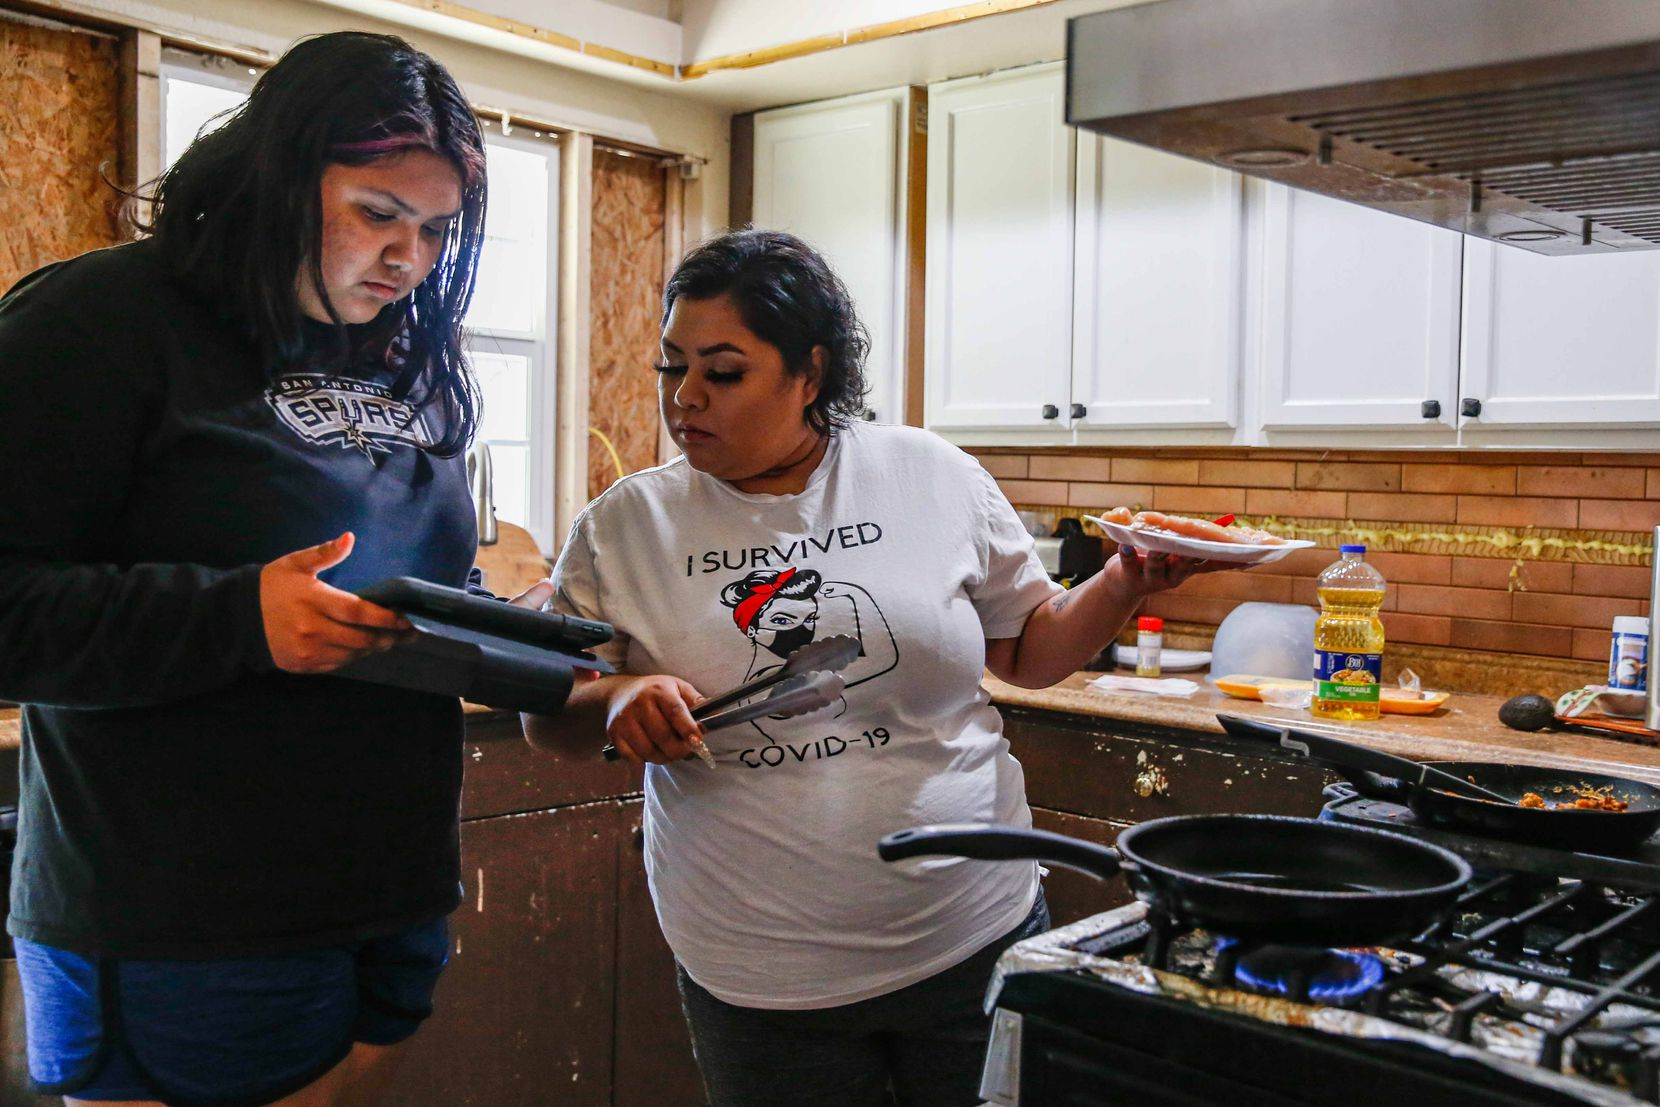 Veloz's sister, 15-year-old Kimberly Veloz, shows her something on an iPad while Veloz prepares food in the kitchen.